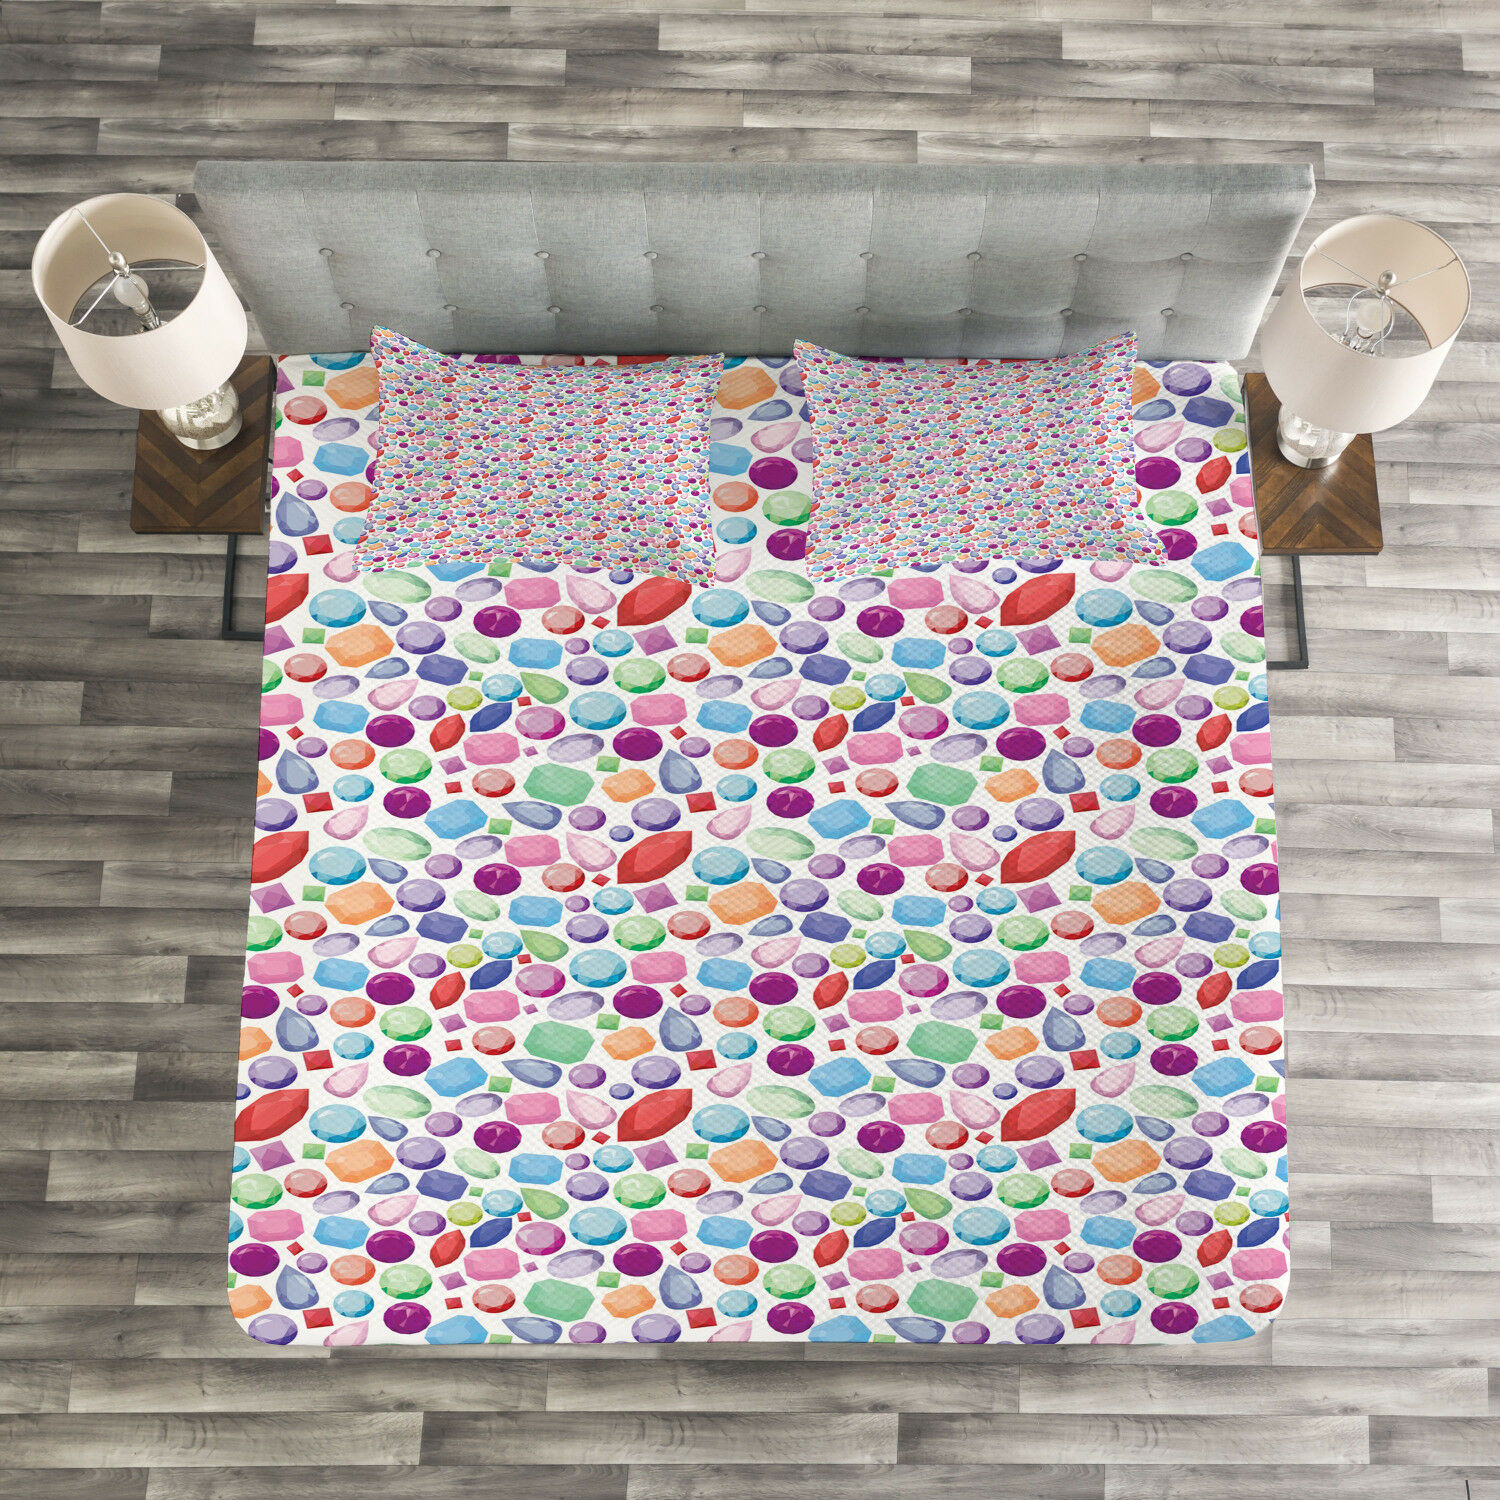 Diamonds Quilted Bedspread & Pillow Shams Set, colorful Stones Design Print